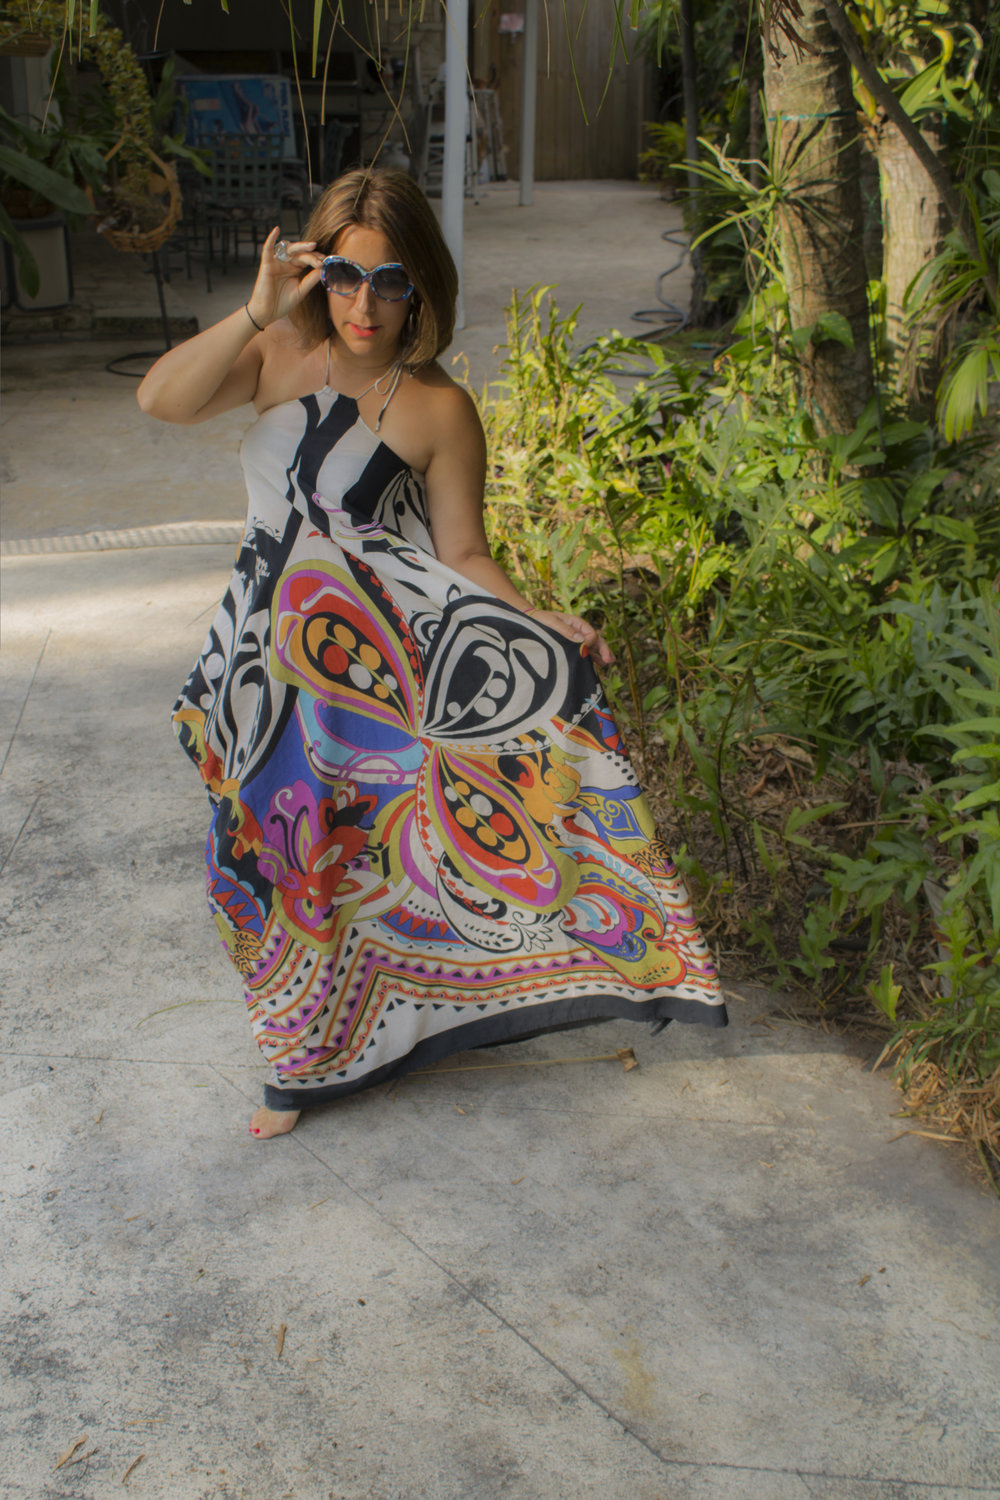 Feeling free on Palm Island in Miami in the Anni from   Mersur   in butterfly magic. Are you feeling it?